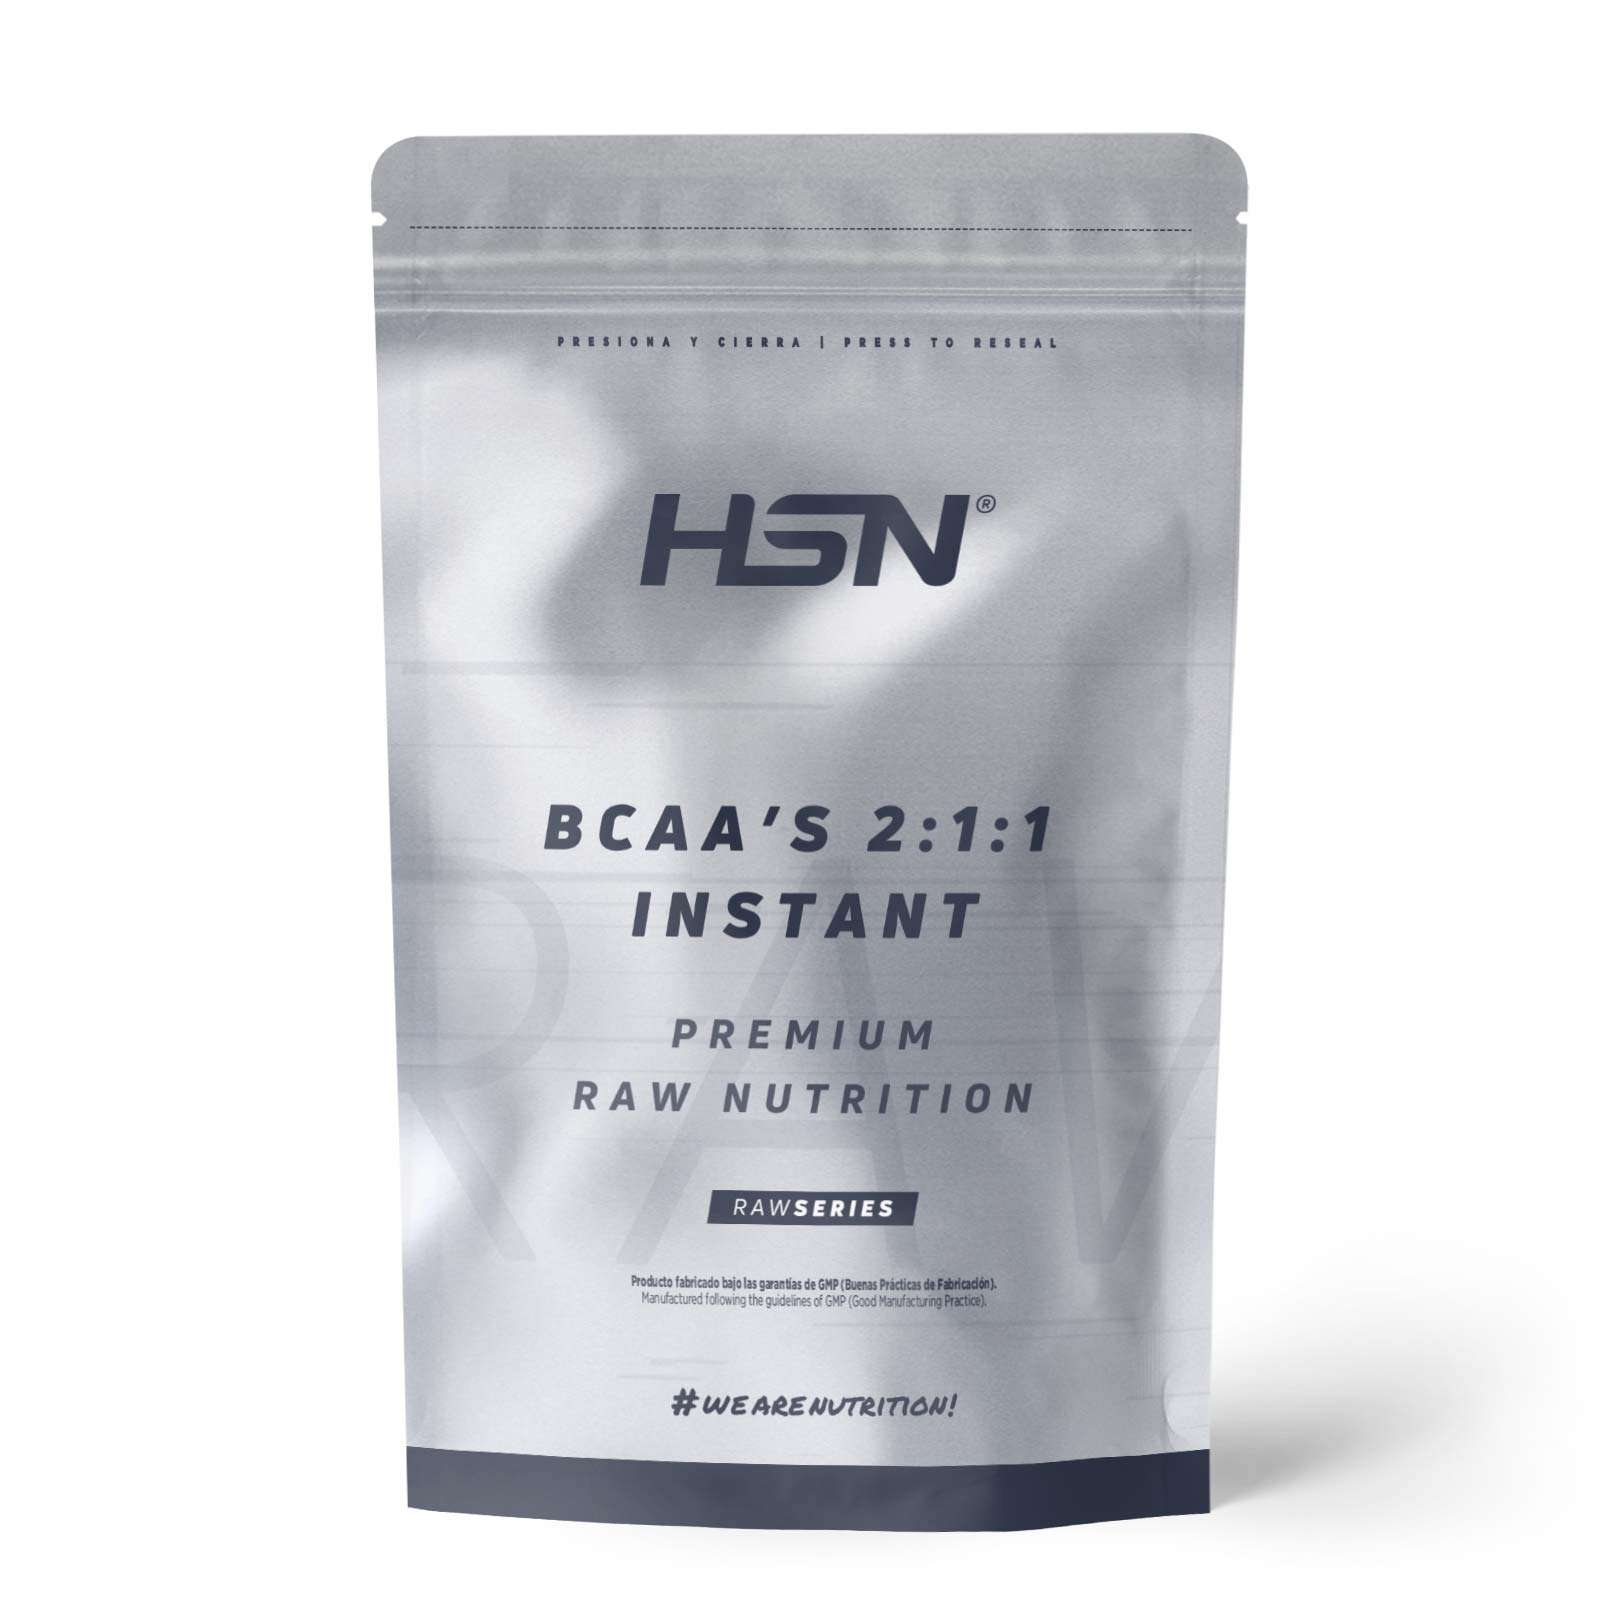 BCAA'S INSTANT 2:1:1 2.0